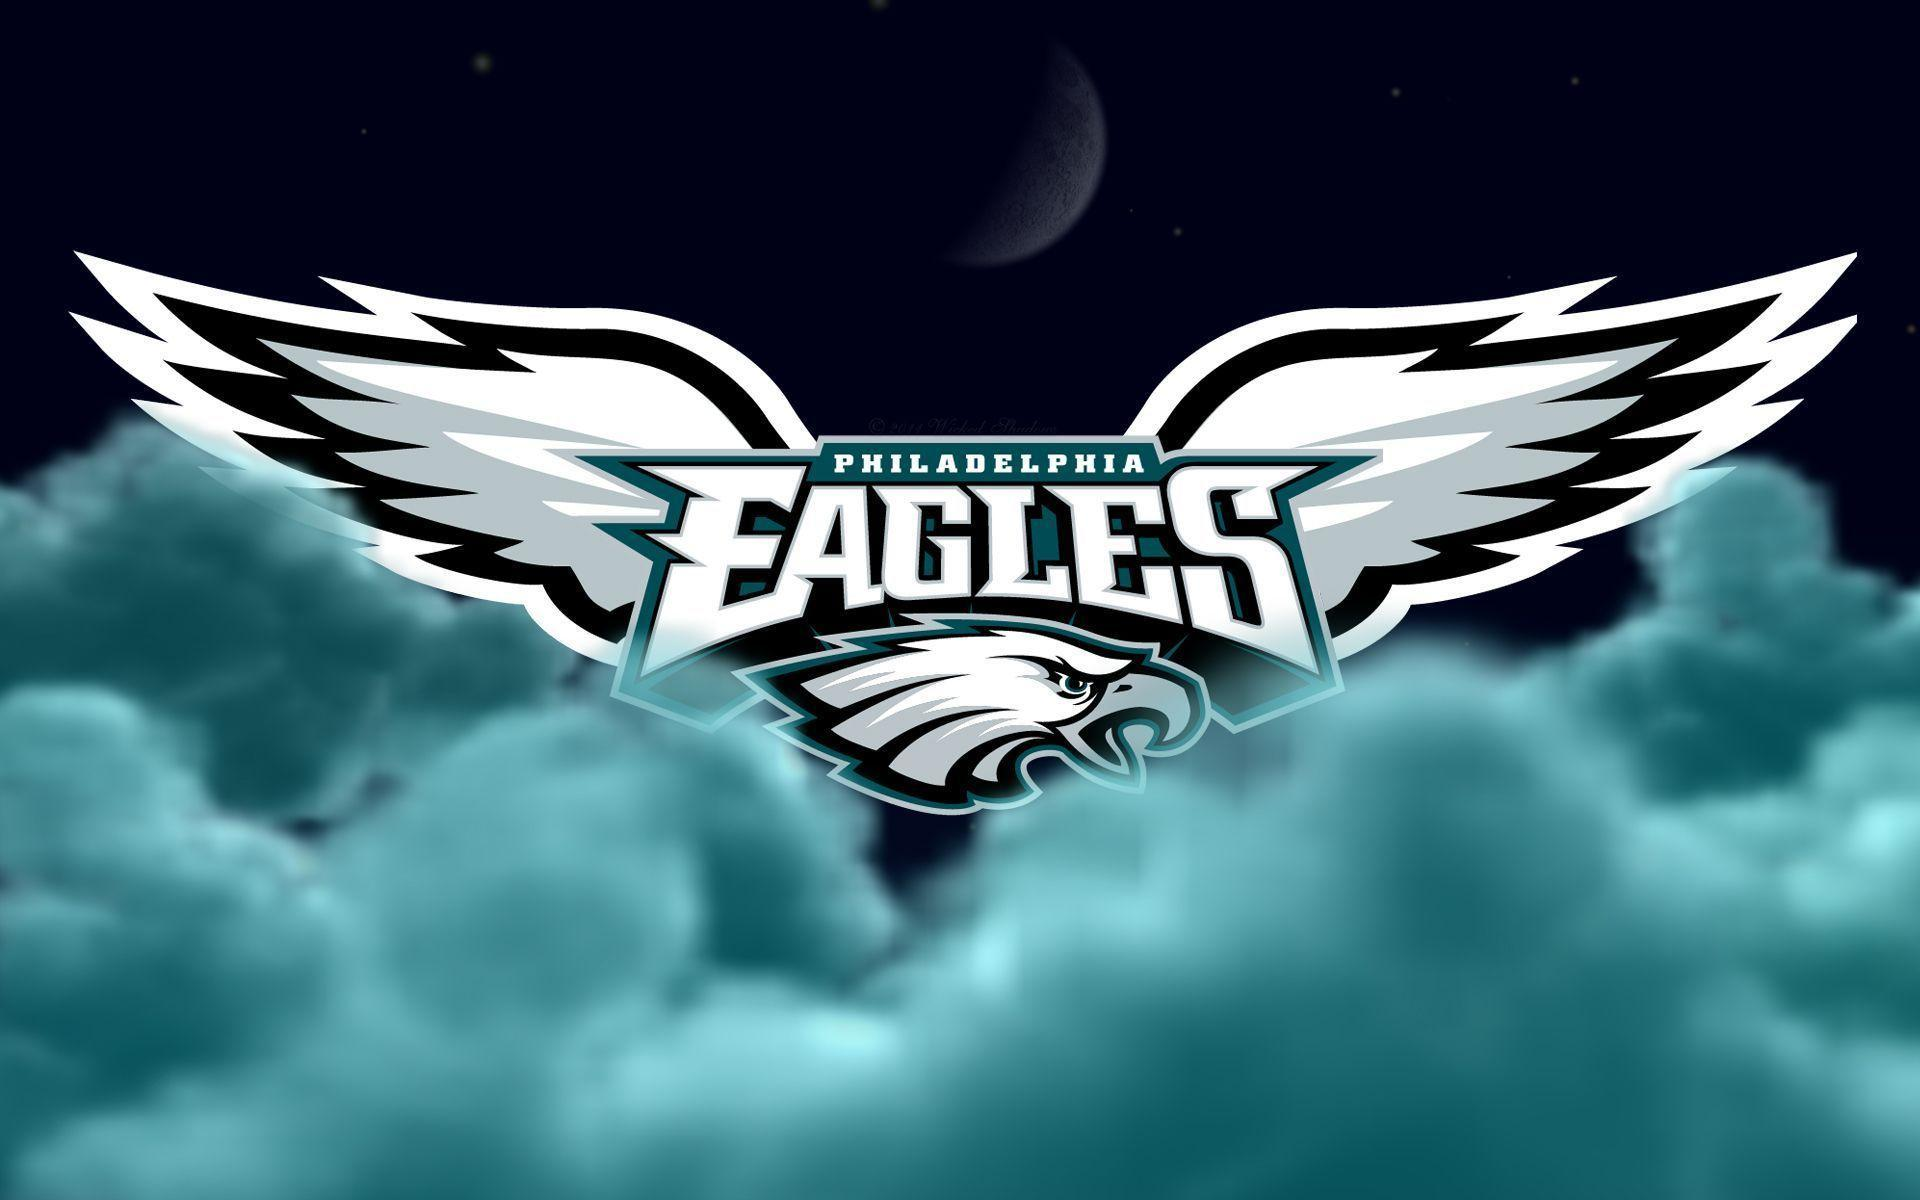 Eagles Wallpapers 14610 1920x1200 px